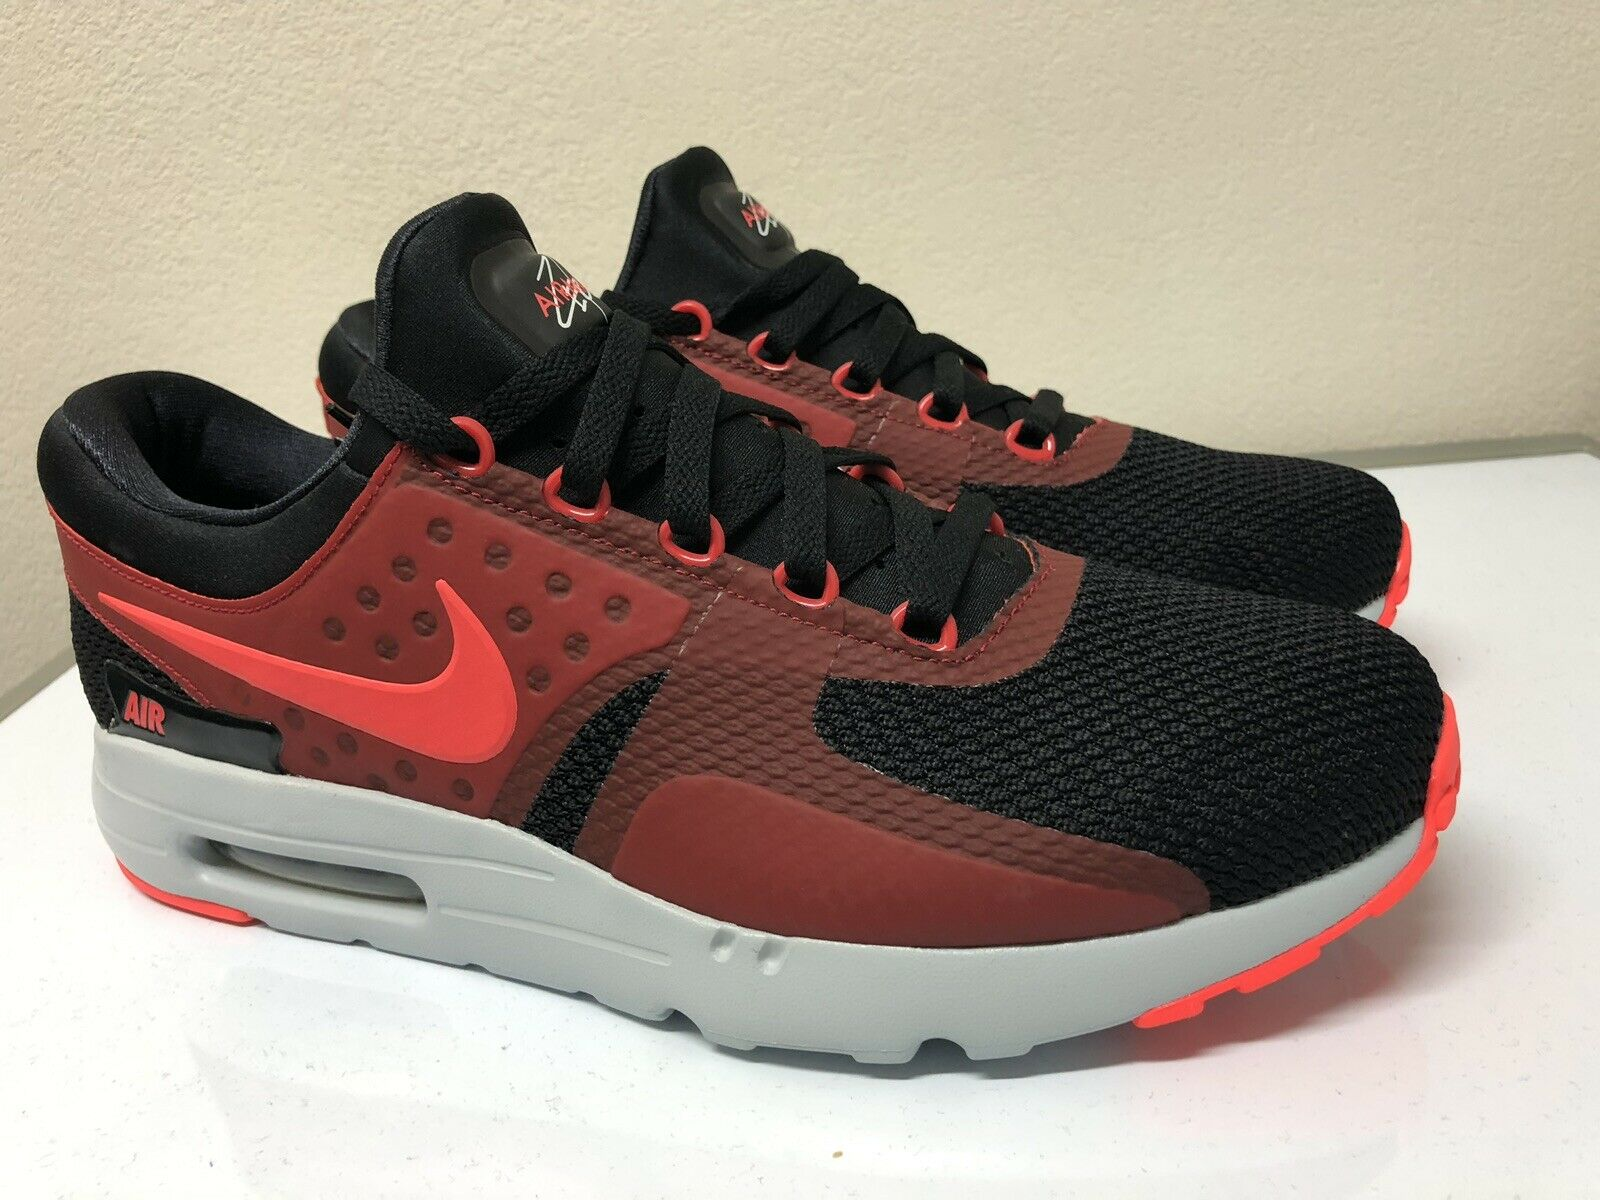 NEW Nike Air Max Zero Essential Black Red Running shoes Men Size 11.5 876070-600